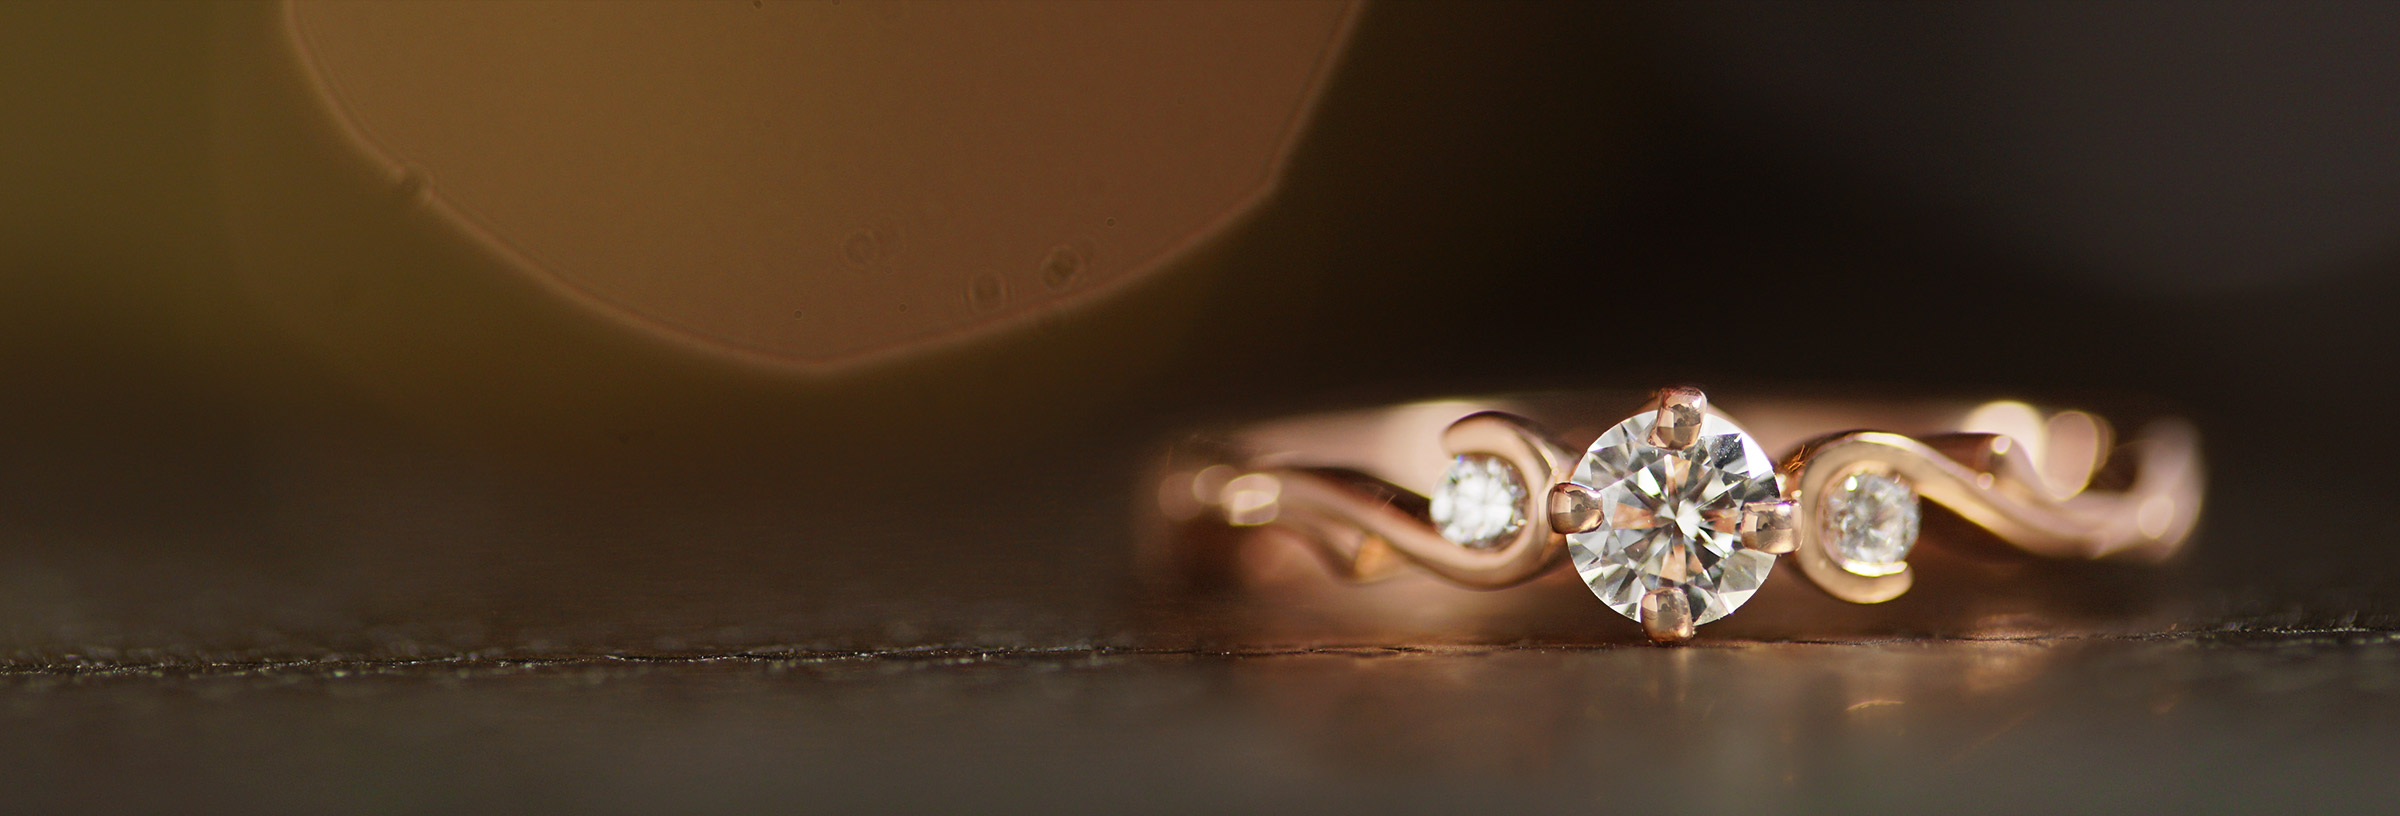 rose-gold-trilogy-style-engagement-ring-with-curl-detail